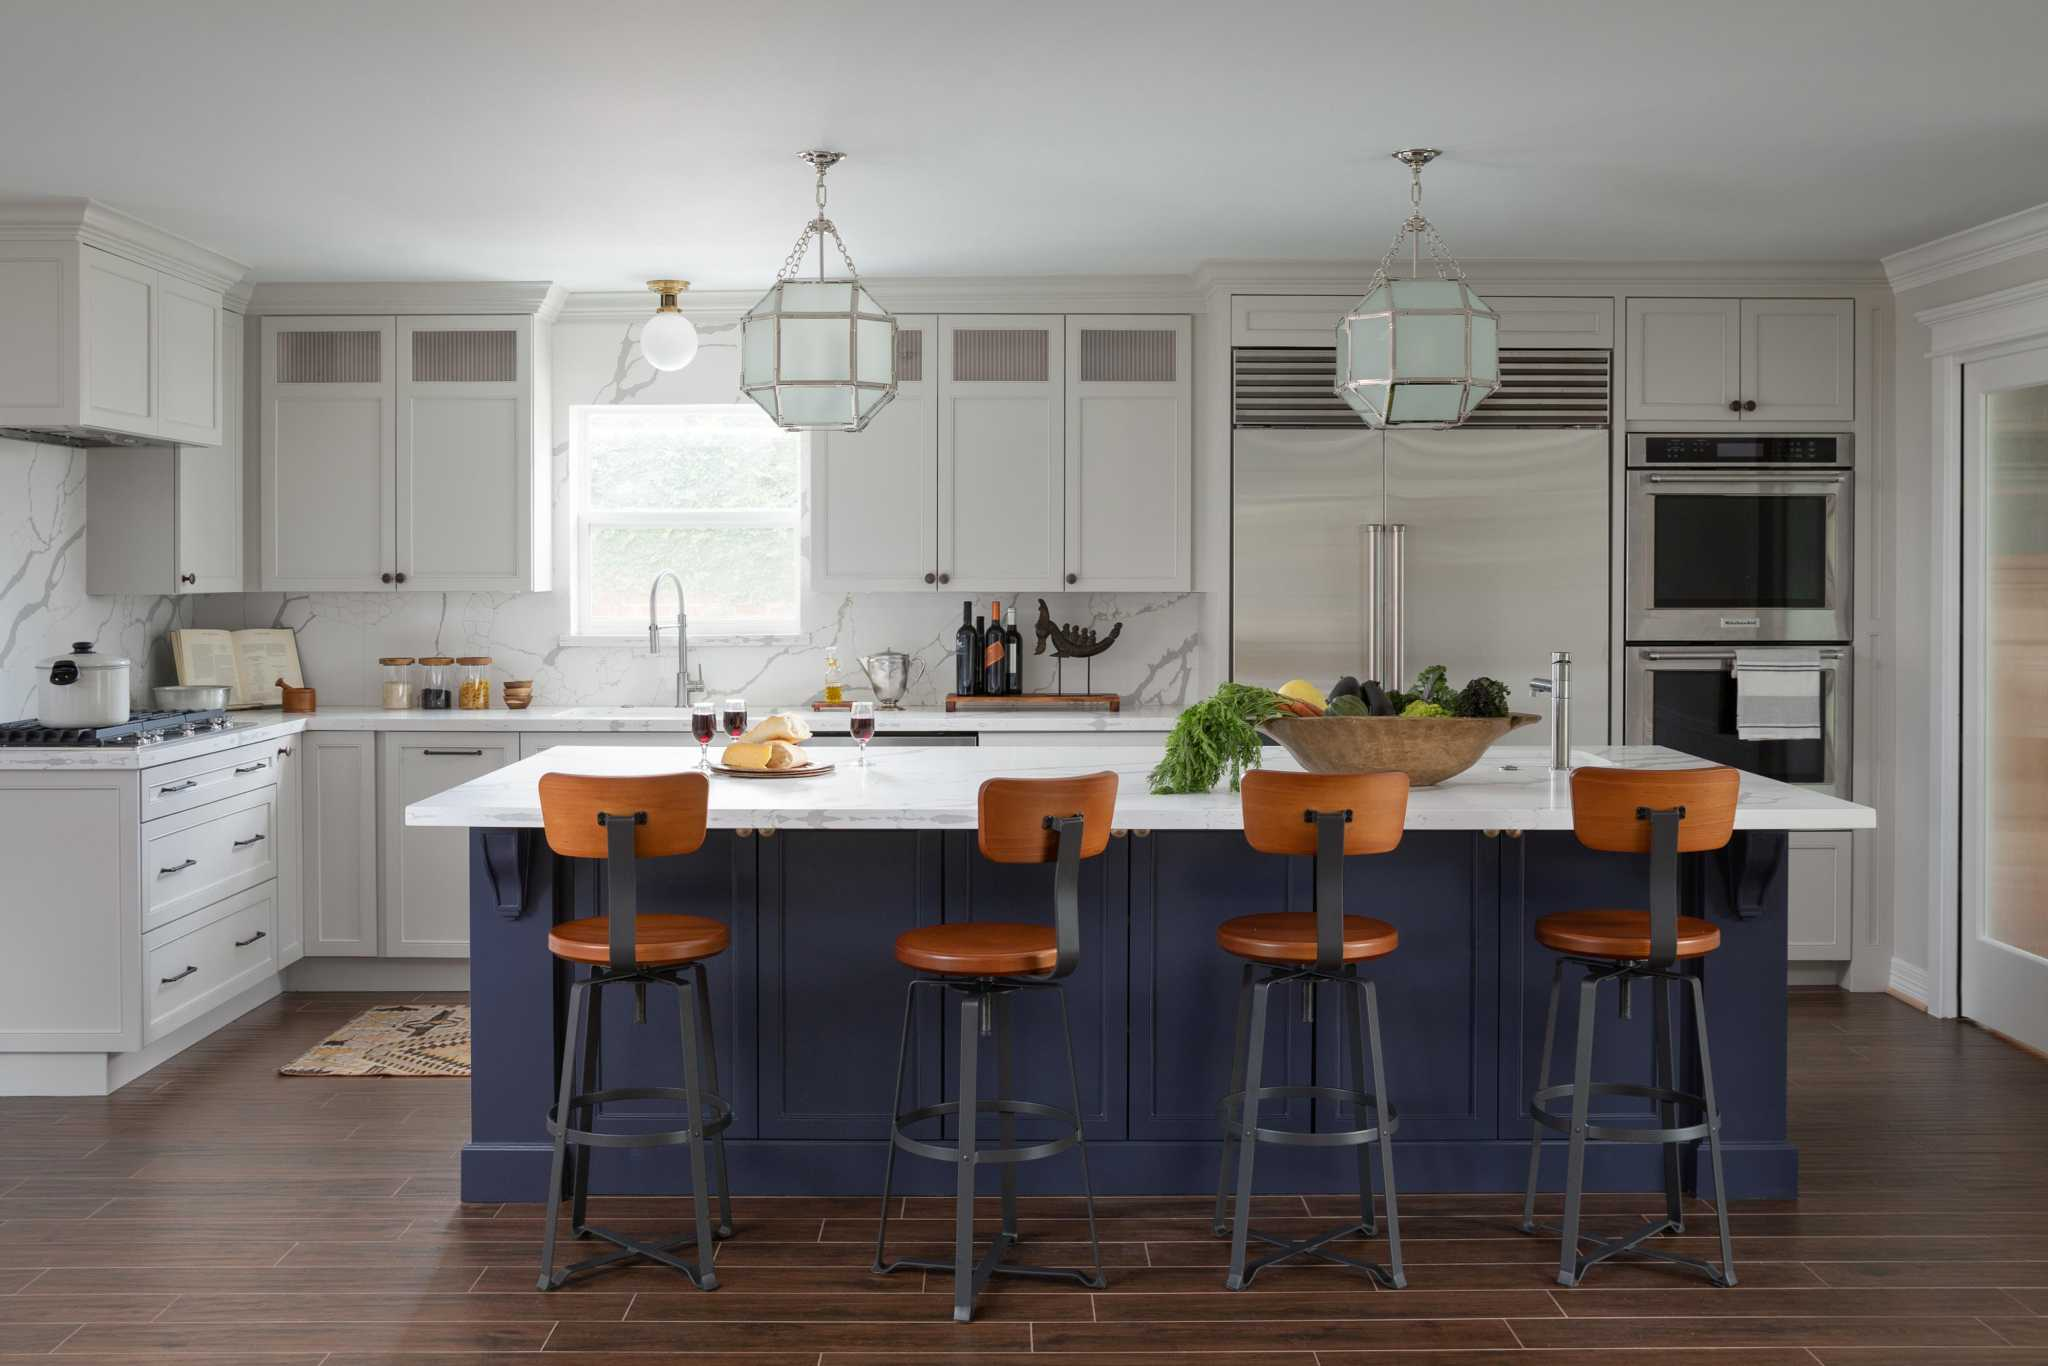 Before And After Hgtv Inspires This Elegant West Houston Kitchen Renovation